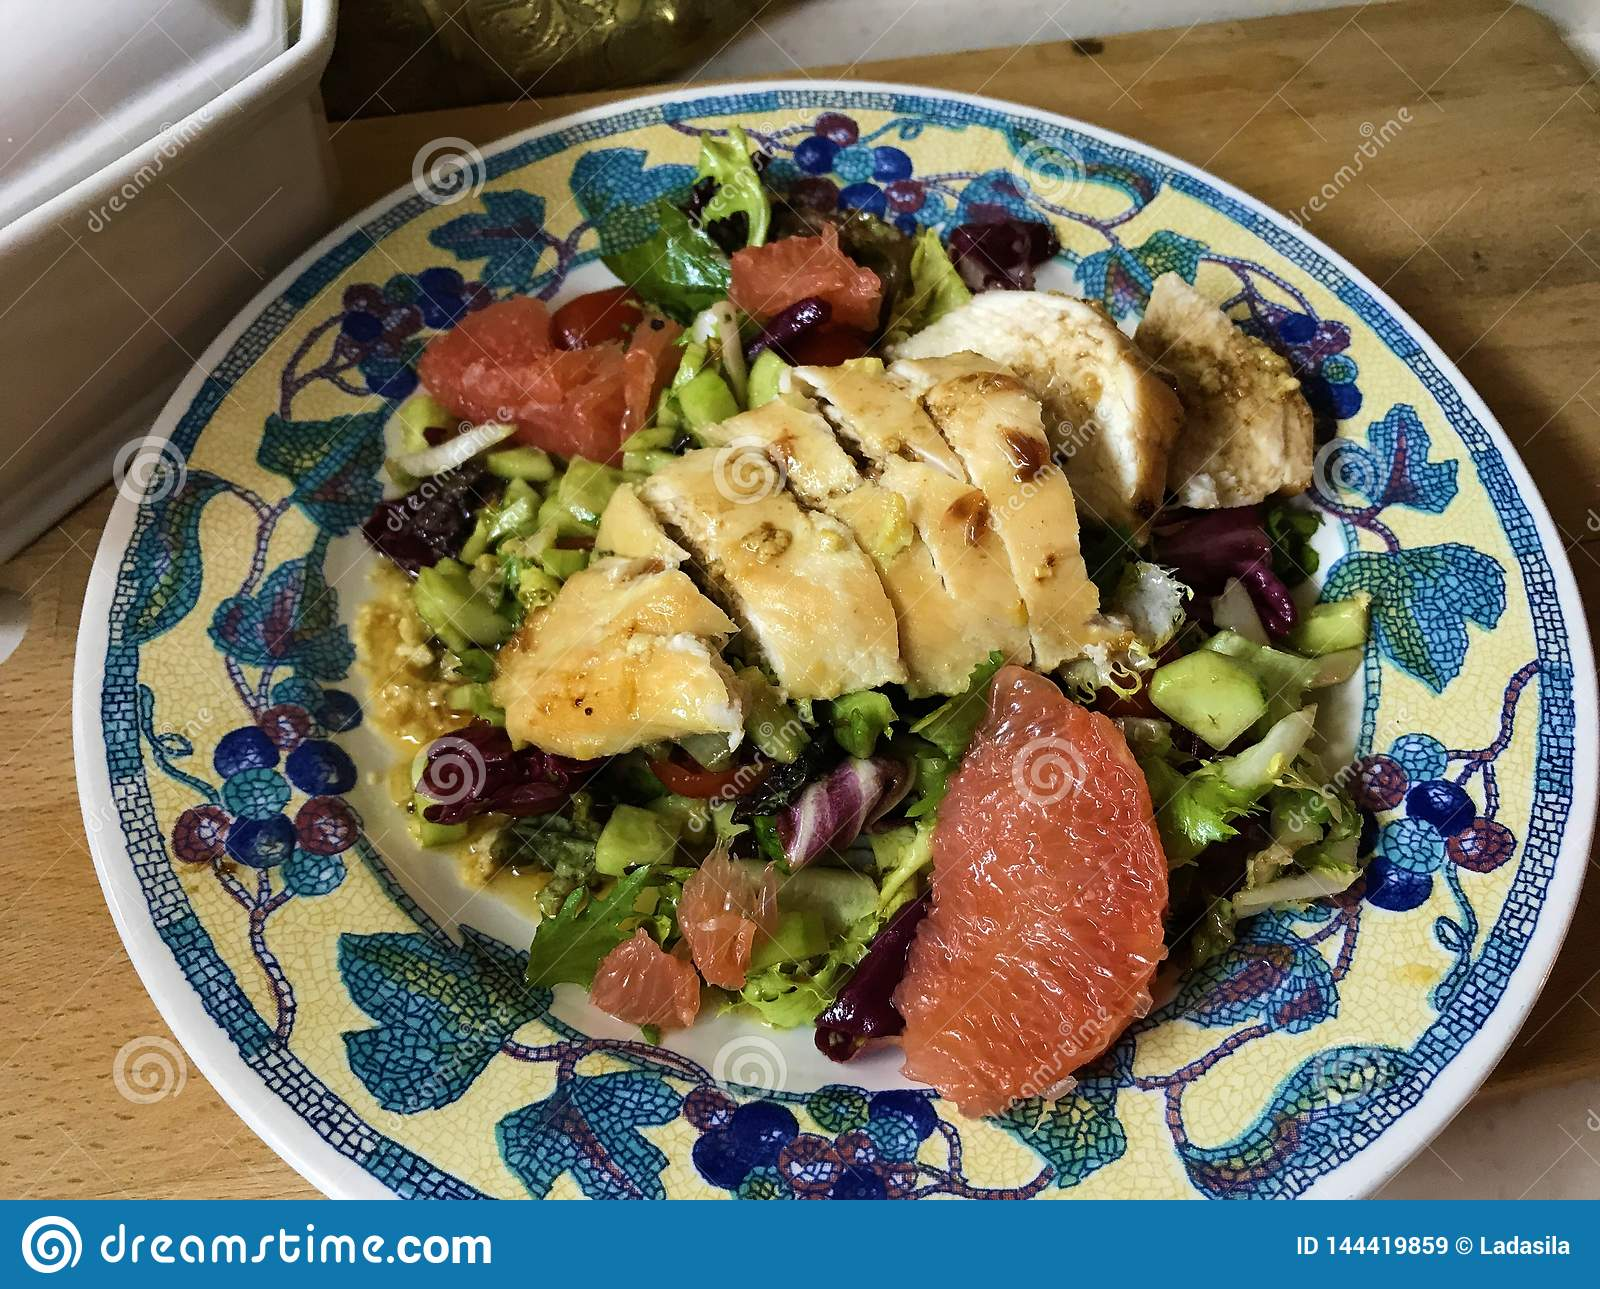 Salad with grapefruit and chicken in mustard marinade.